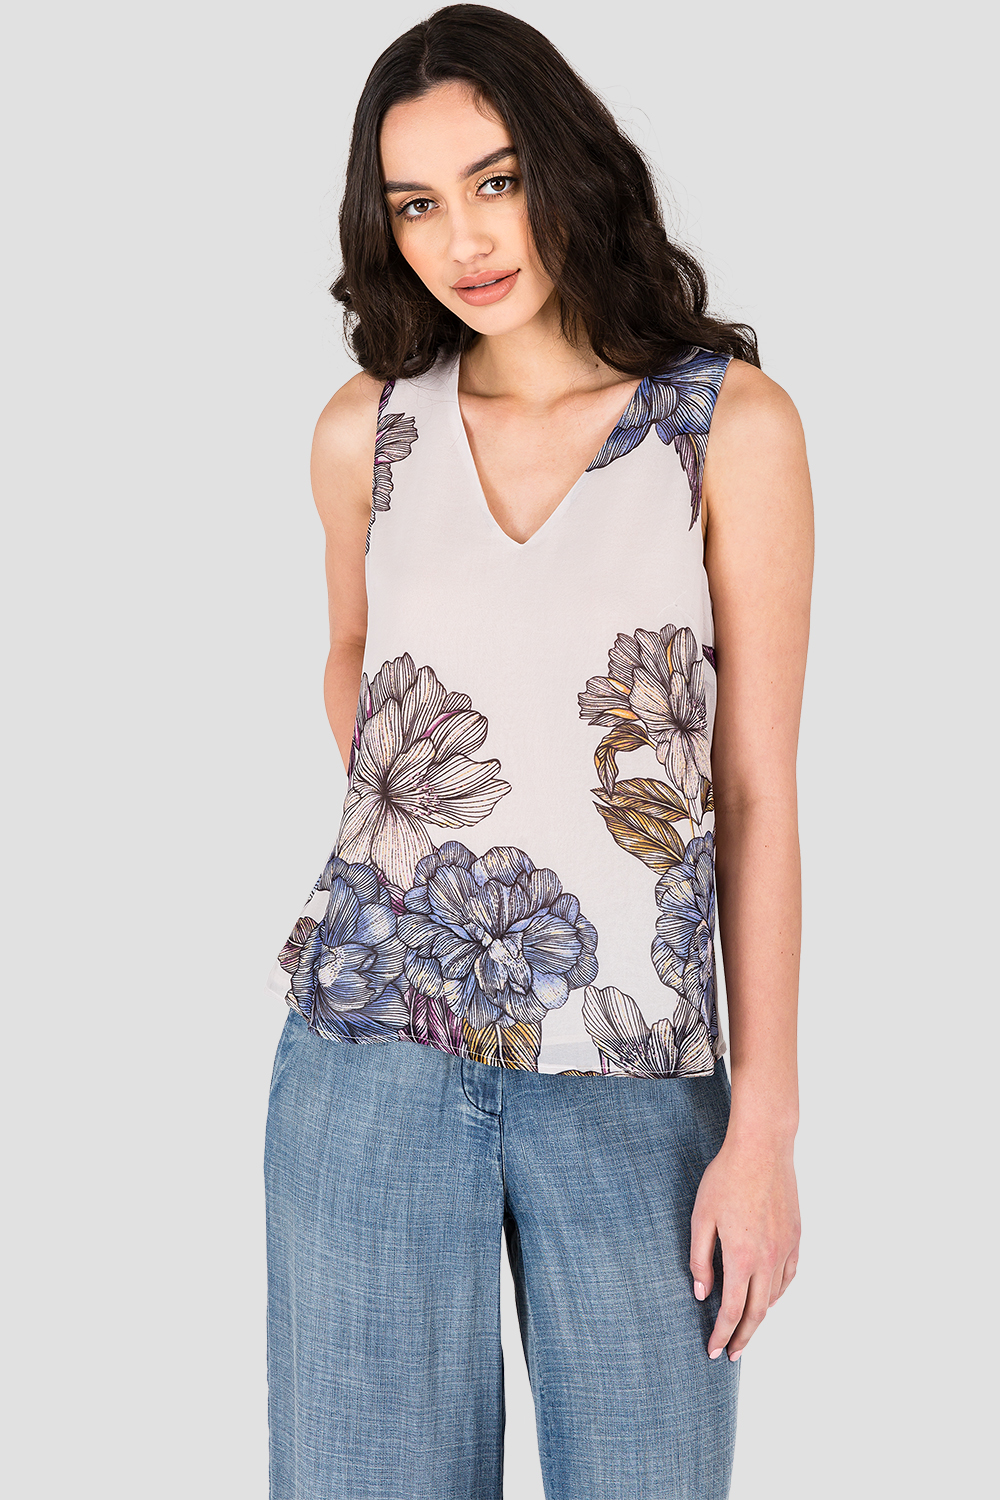 Standards & Practices Women's Gray Floral Print Chiffon Sleeveless Tie V-Back Top Back